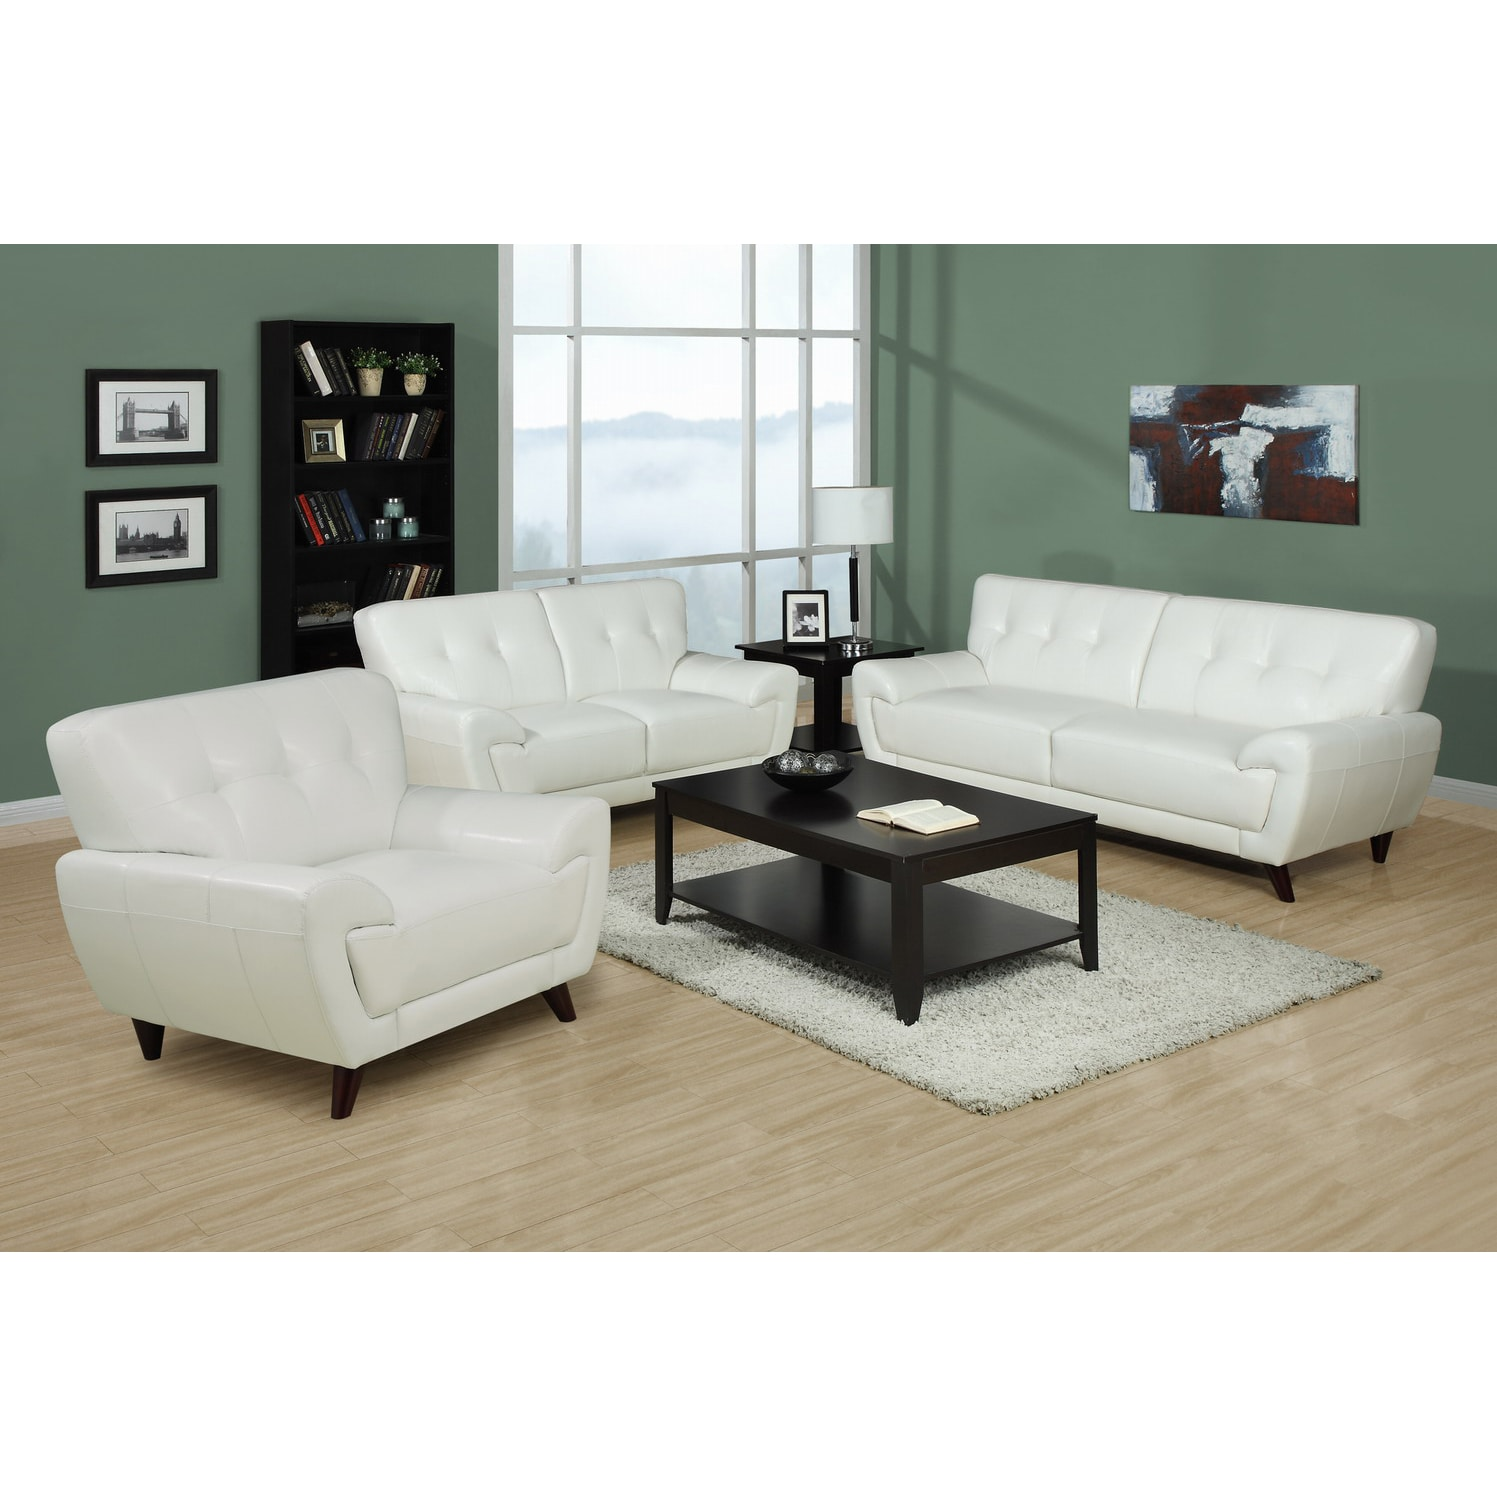 White Bonded Leather Upholstery New Living Room Lounge